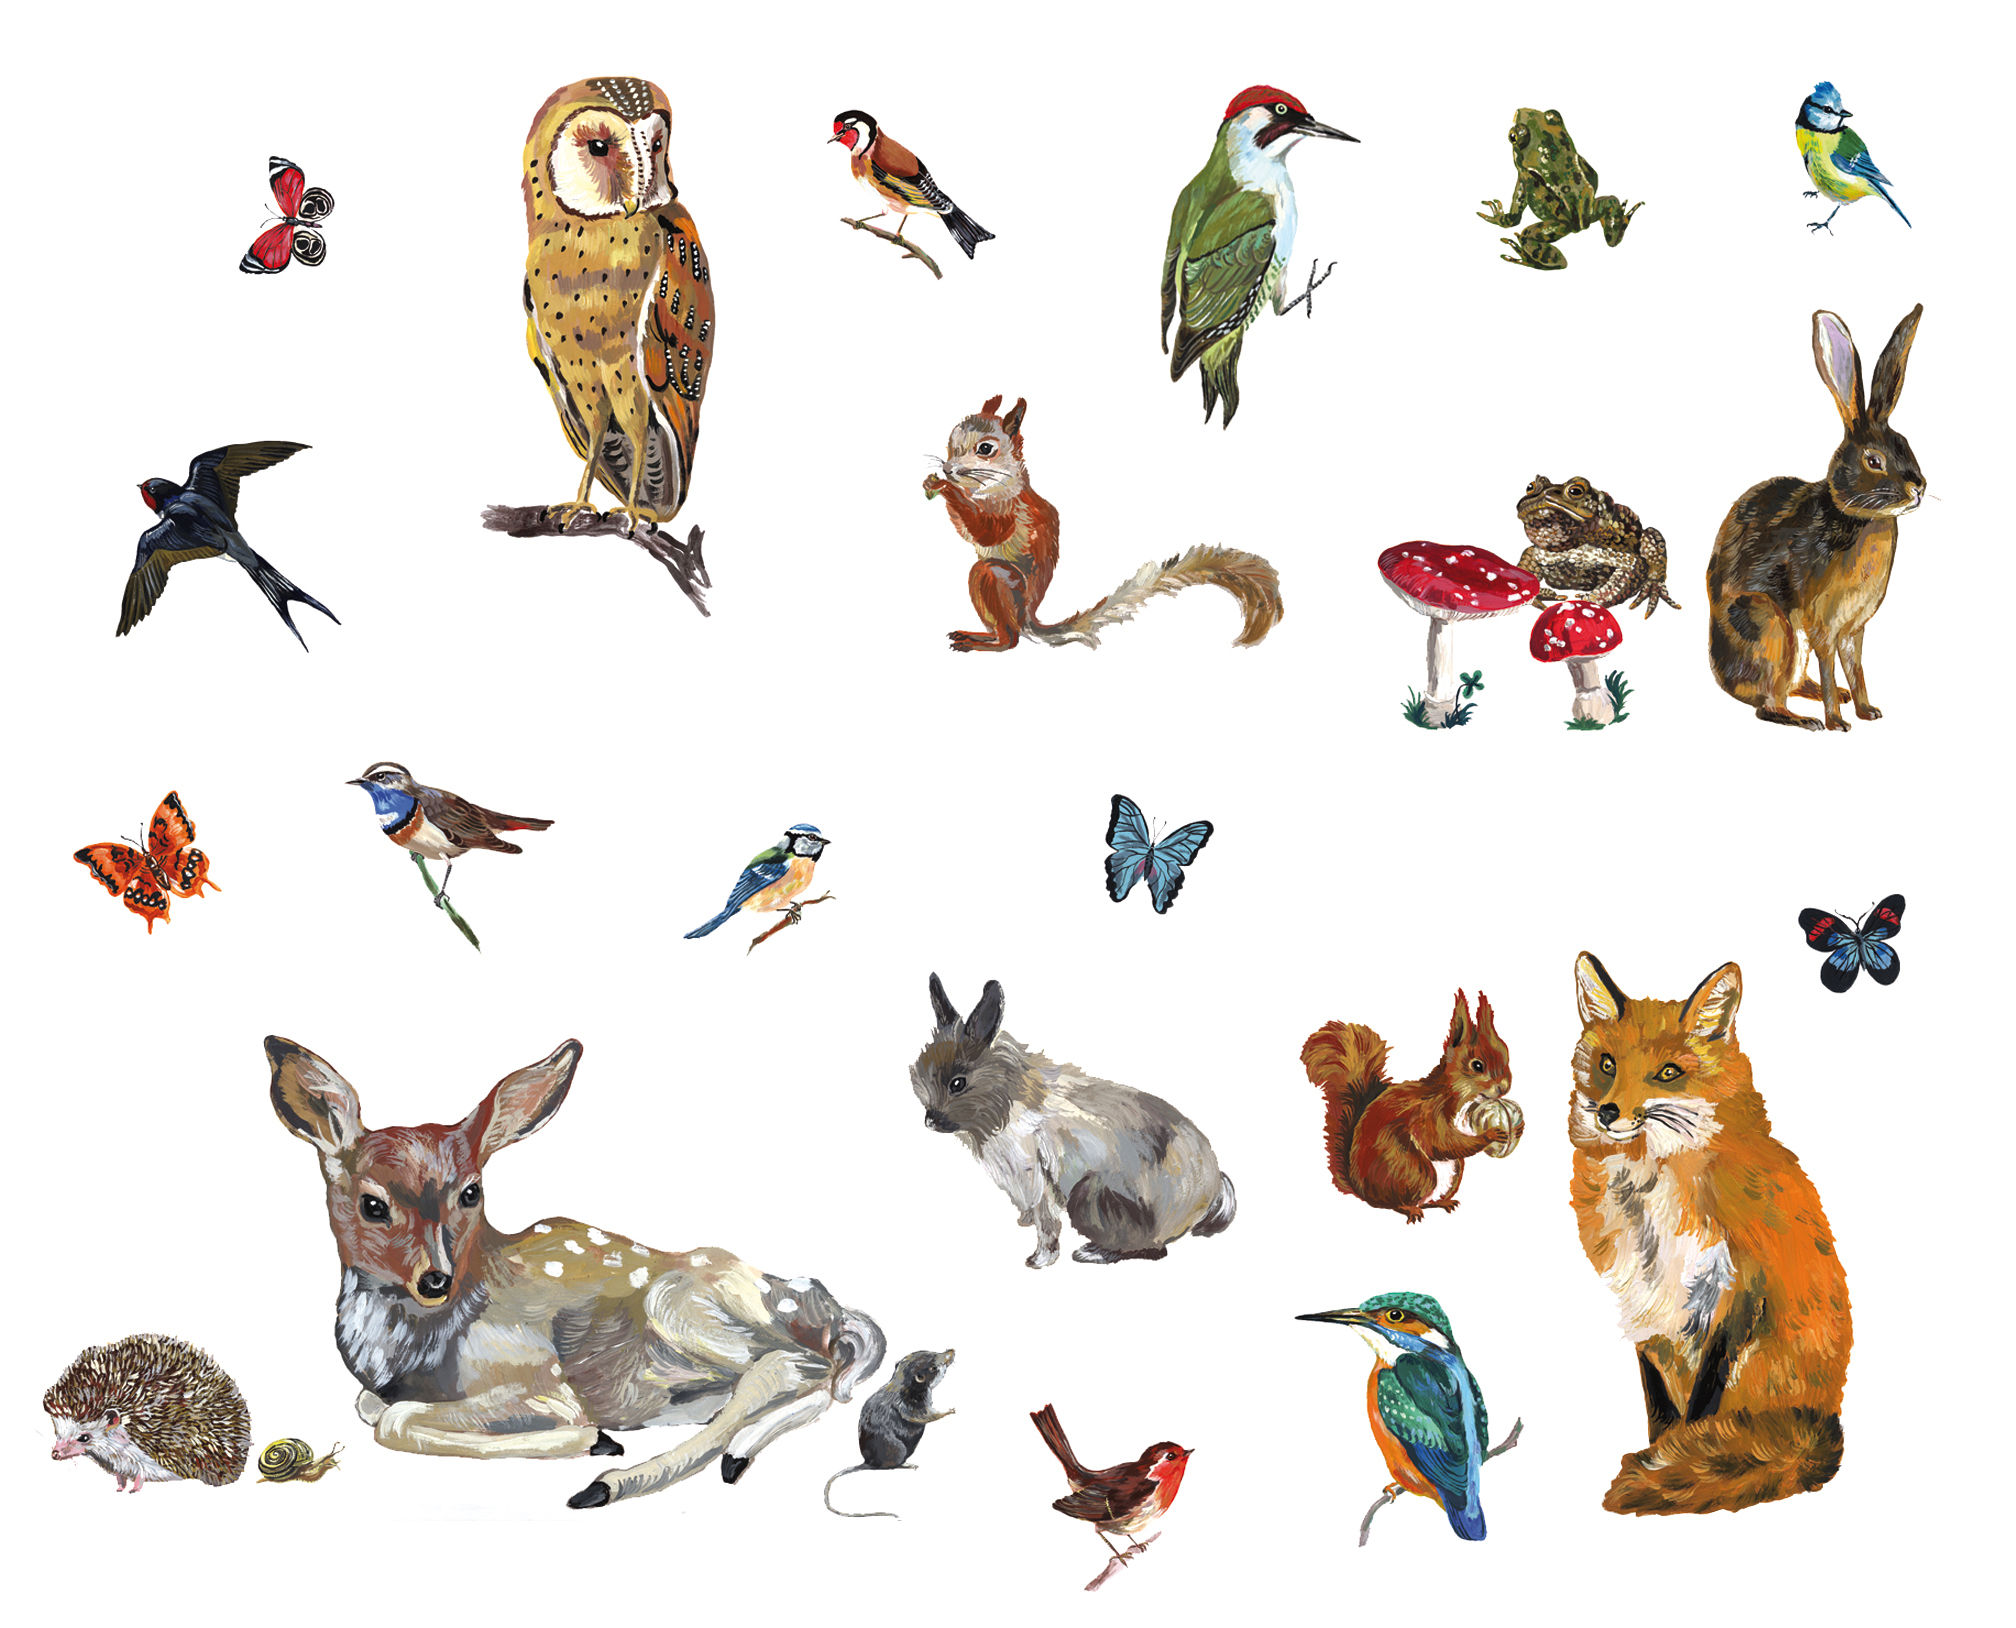 Les Animaux 2 Sticker Set Of 27 Stickers 27 Stickers By